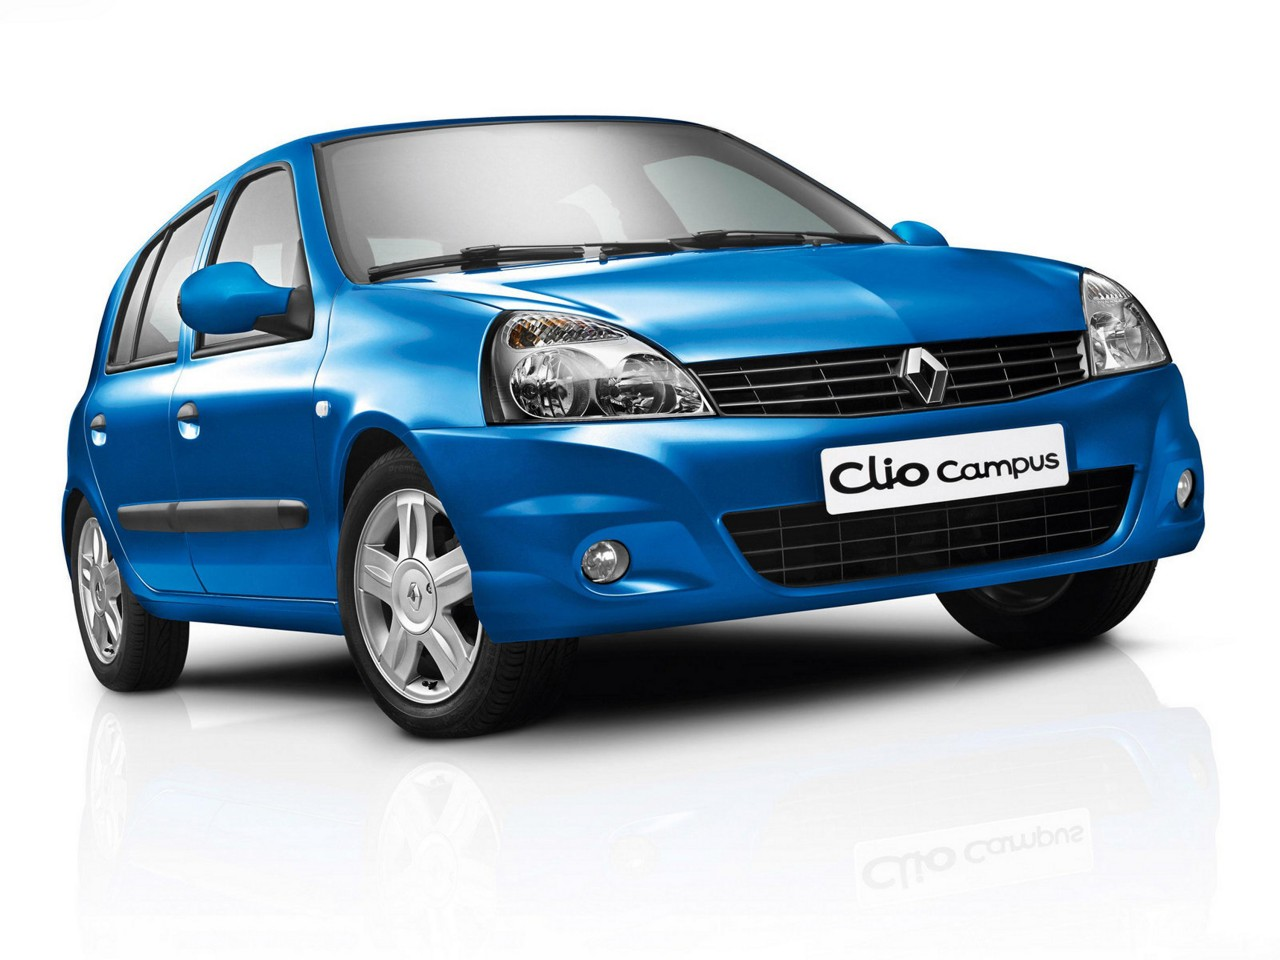 2009 renault clio campus wallpapers pictures. Black Bedroom Furniture Sets. Home Design Ideas